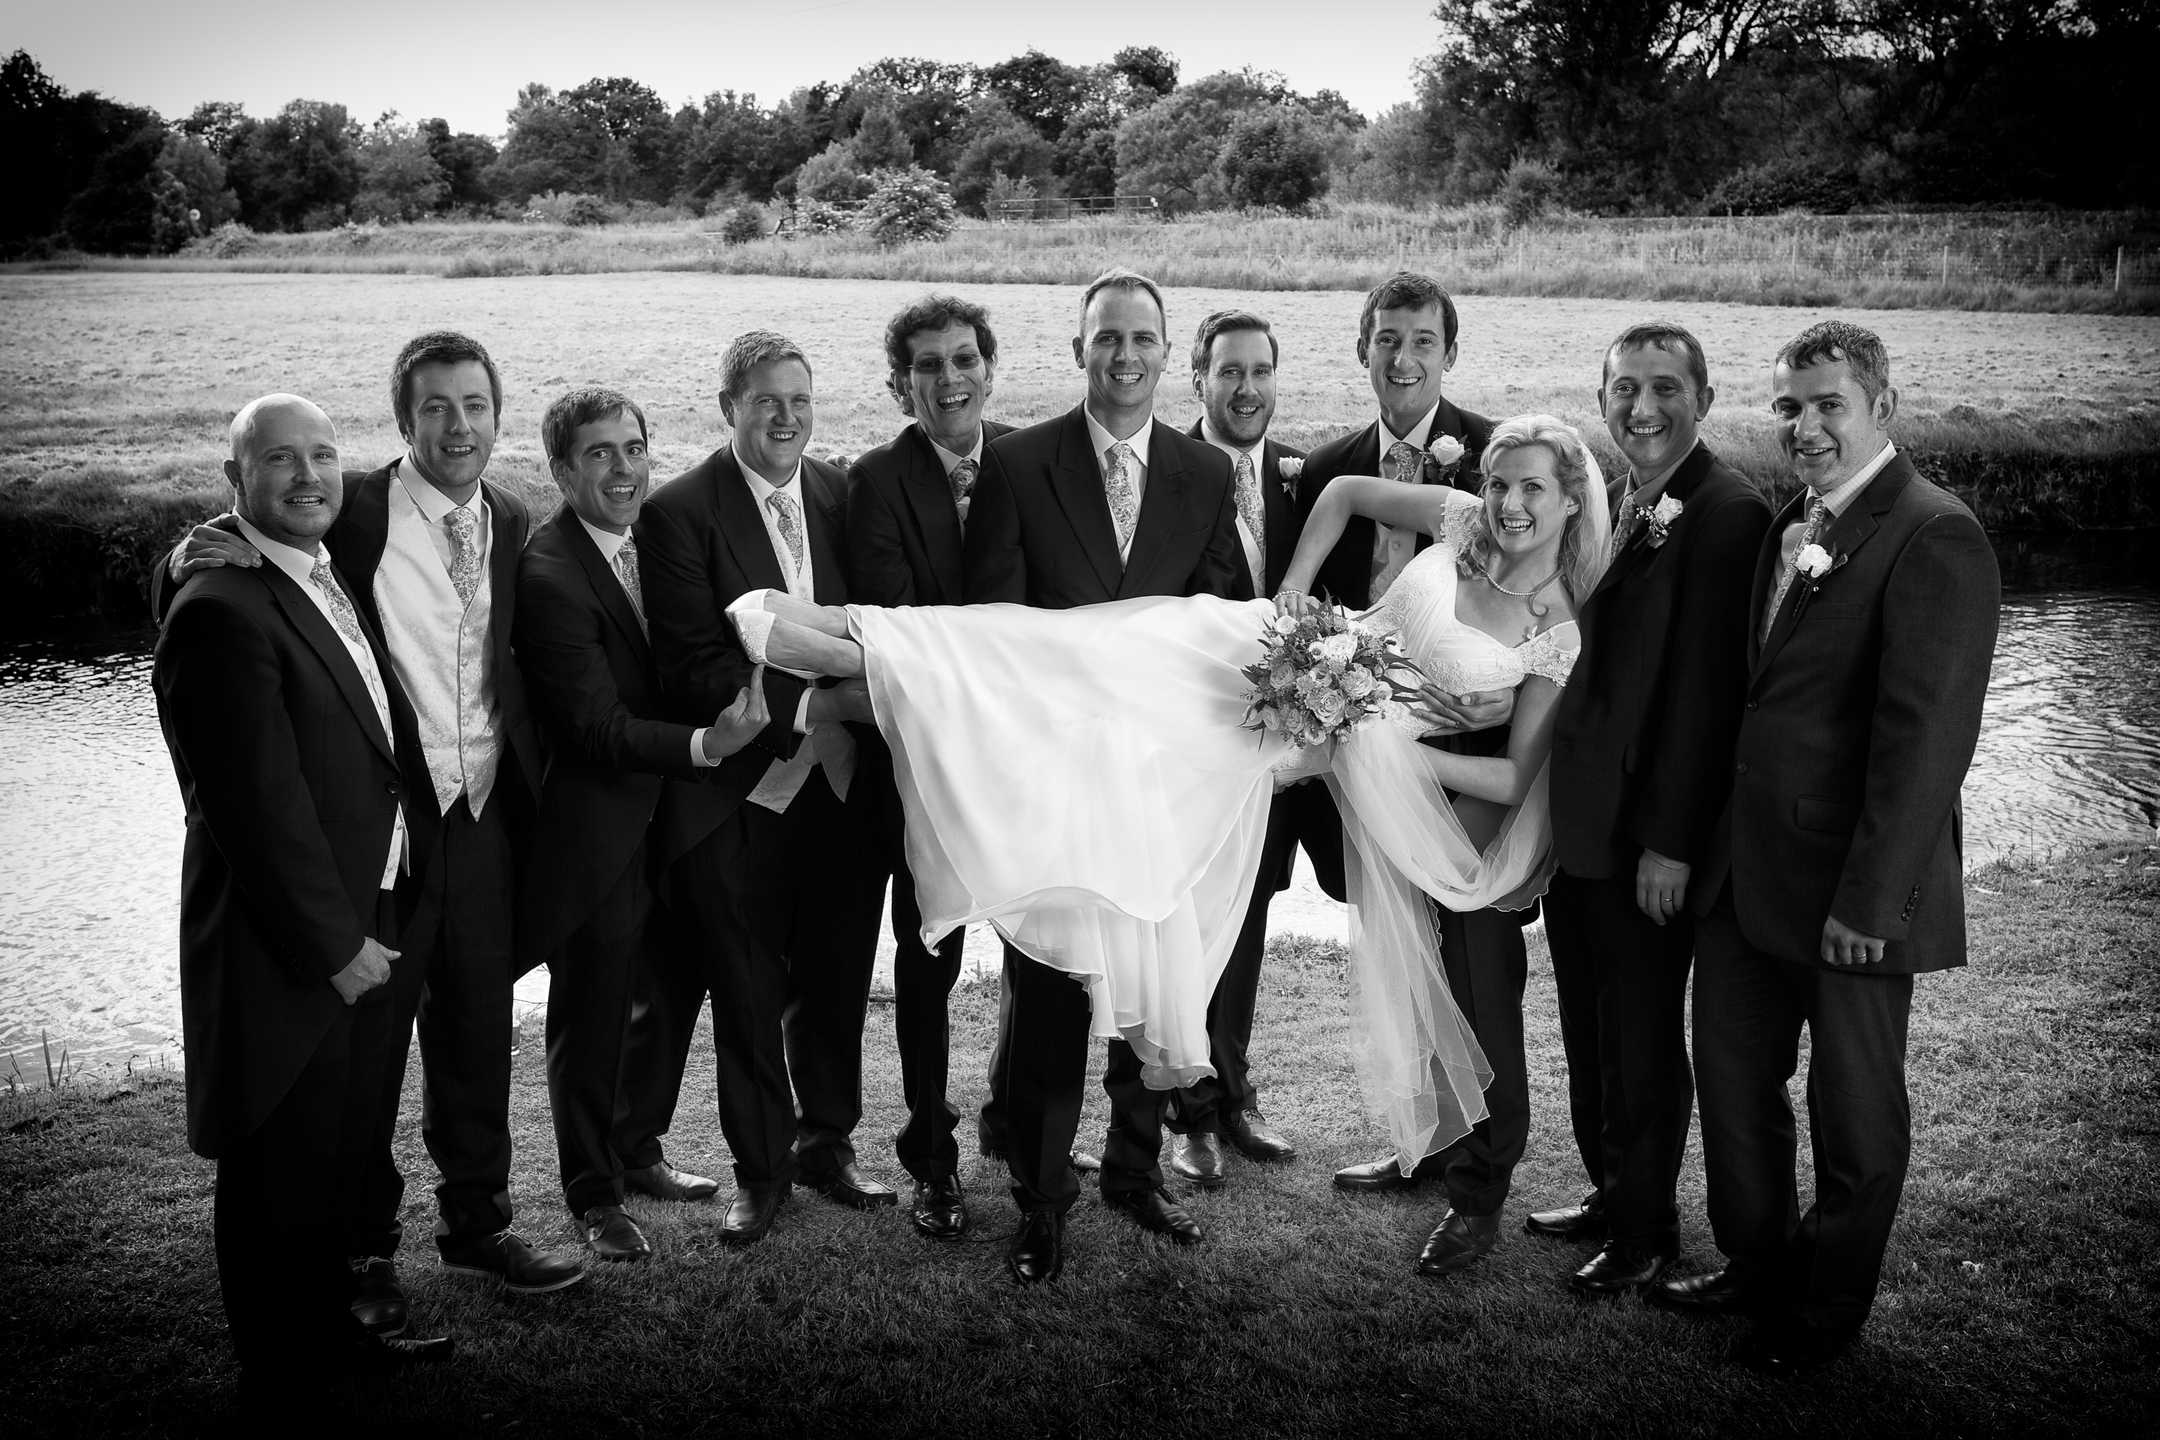 Pages wedding photo 067